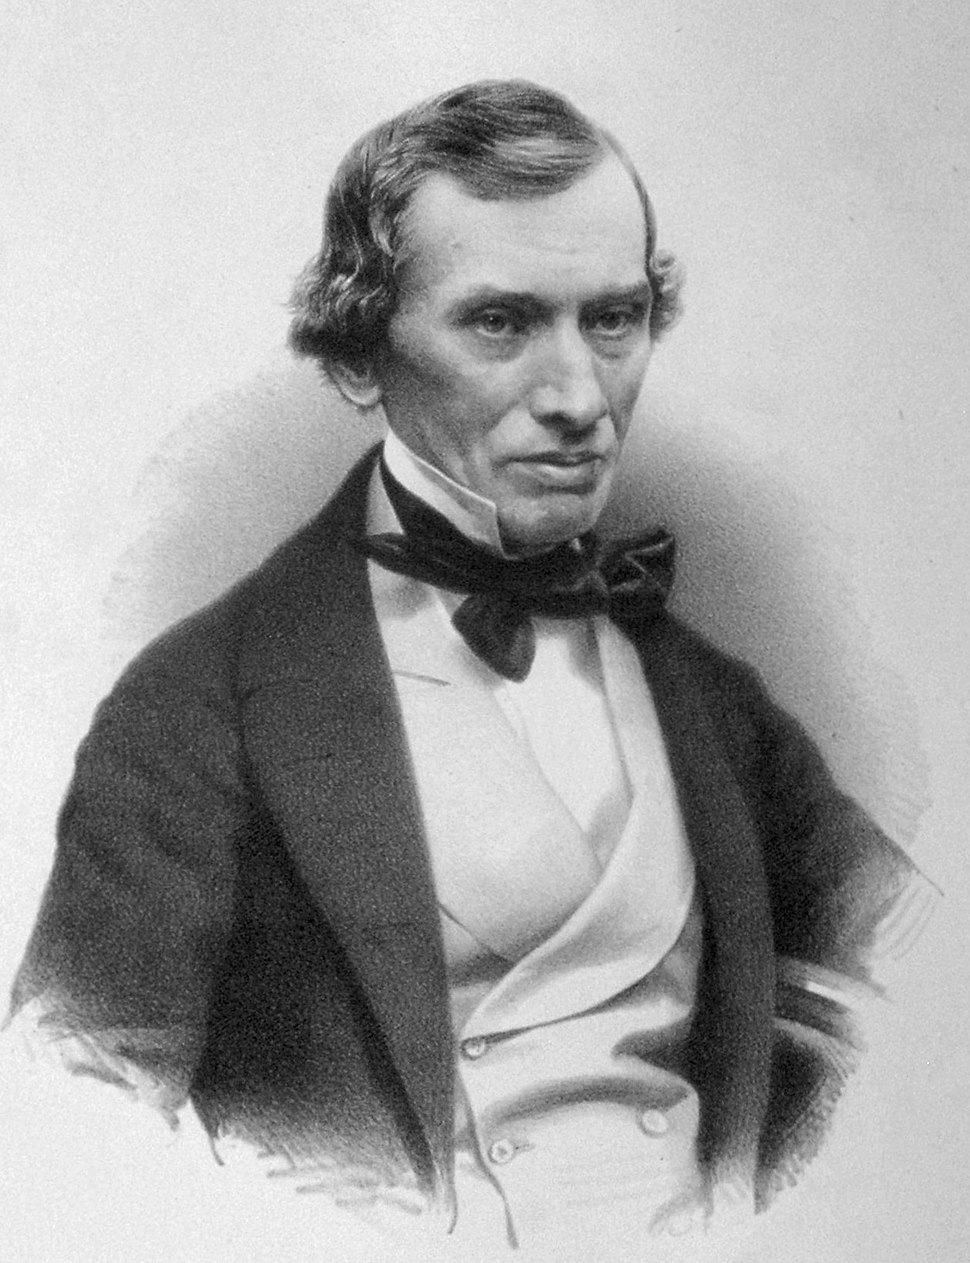 Lithograph portrait of Thomas Graham in 1856